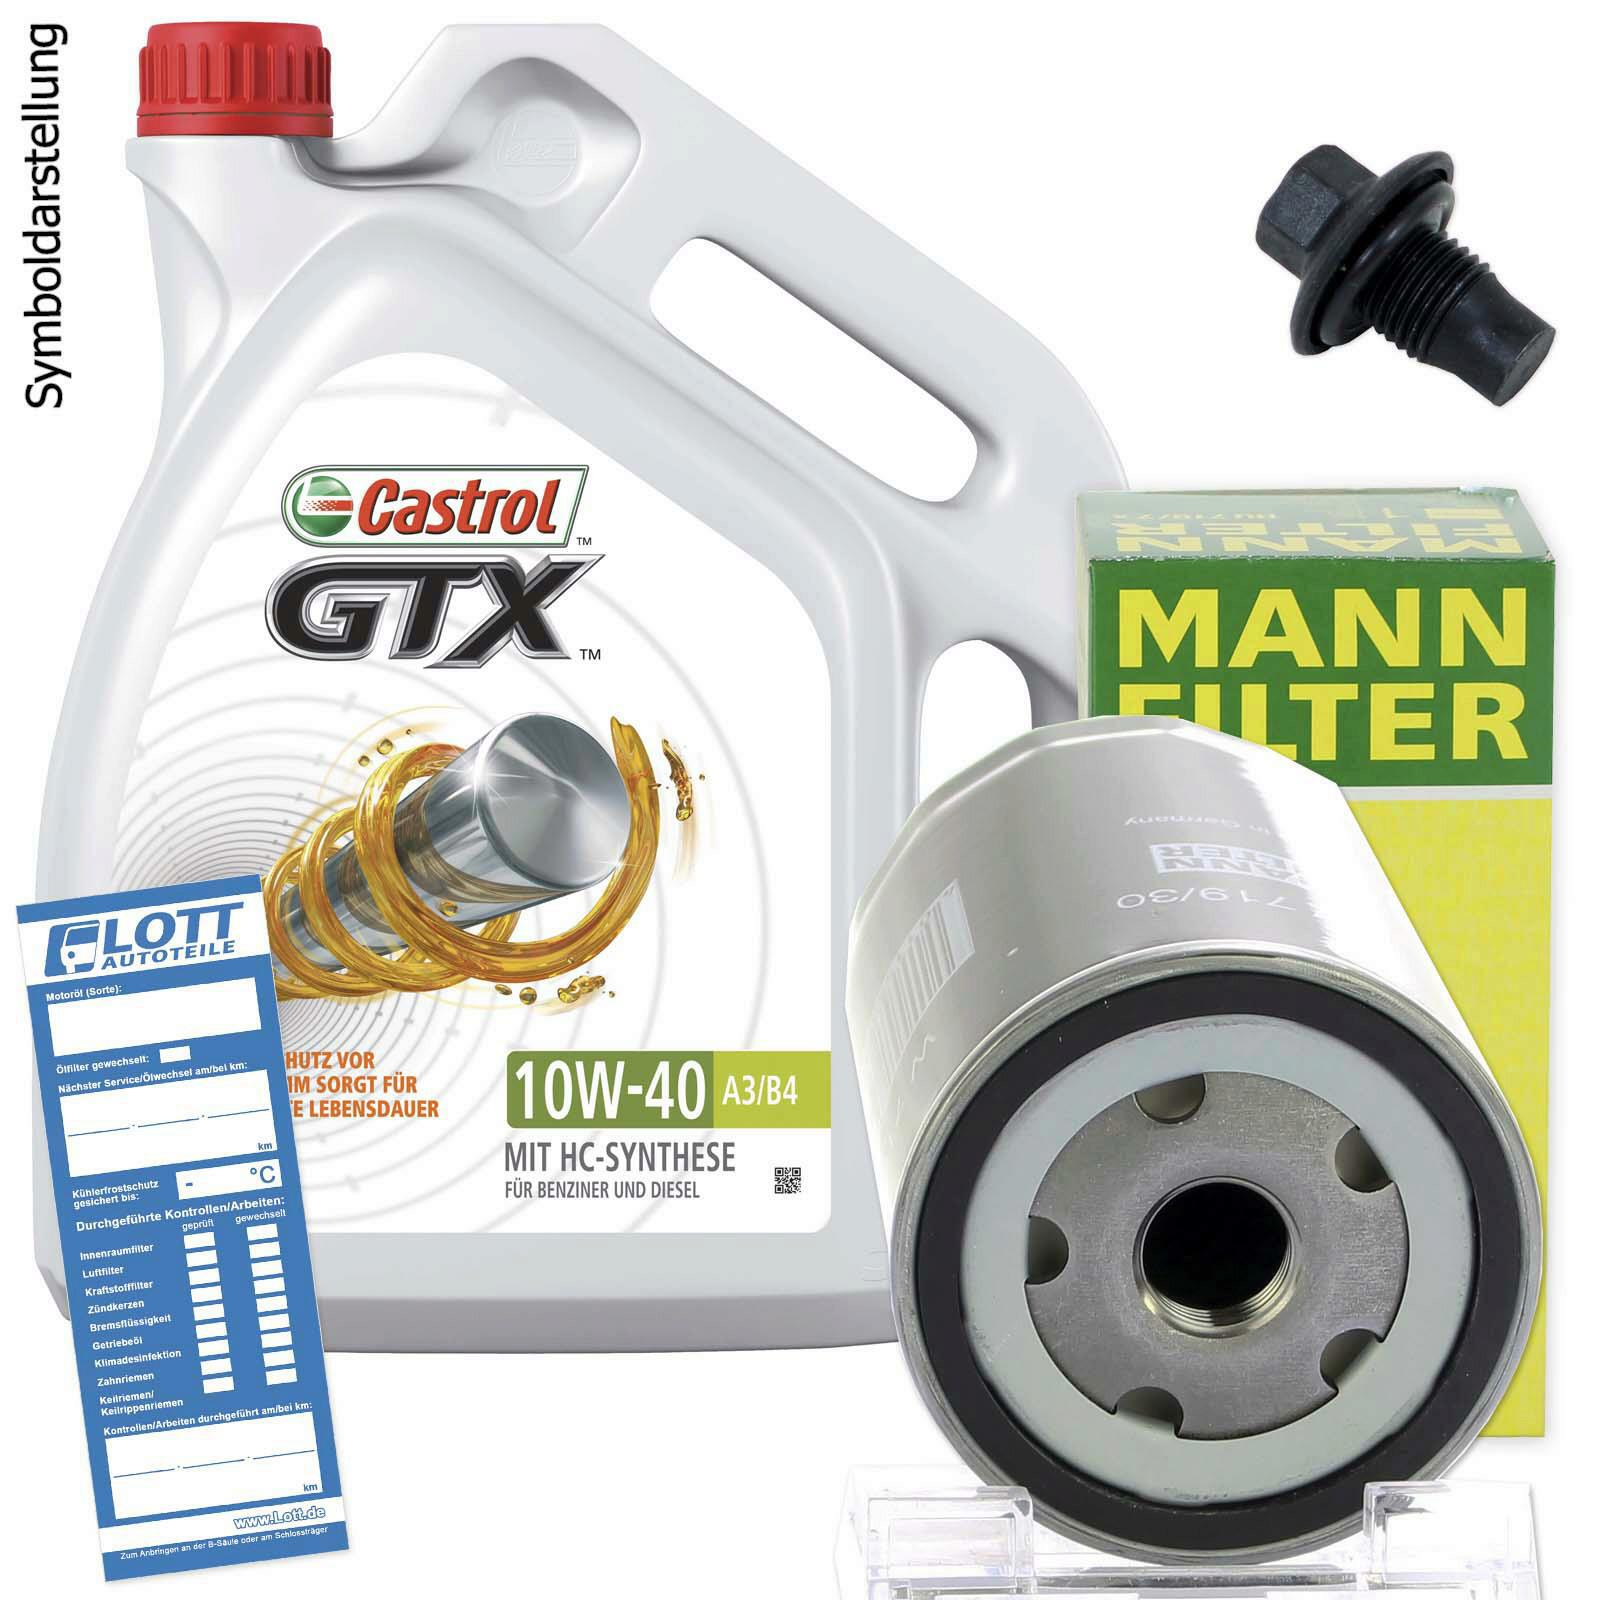 Ölwechsel Set 5L 10W40 Öl Motoröl Castrol + MANN Ölfilter